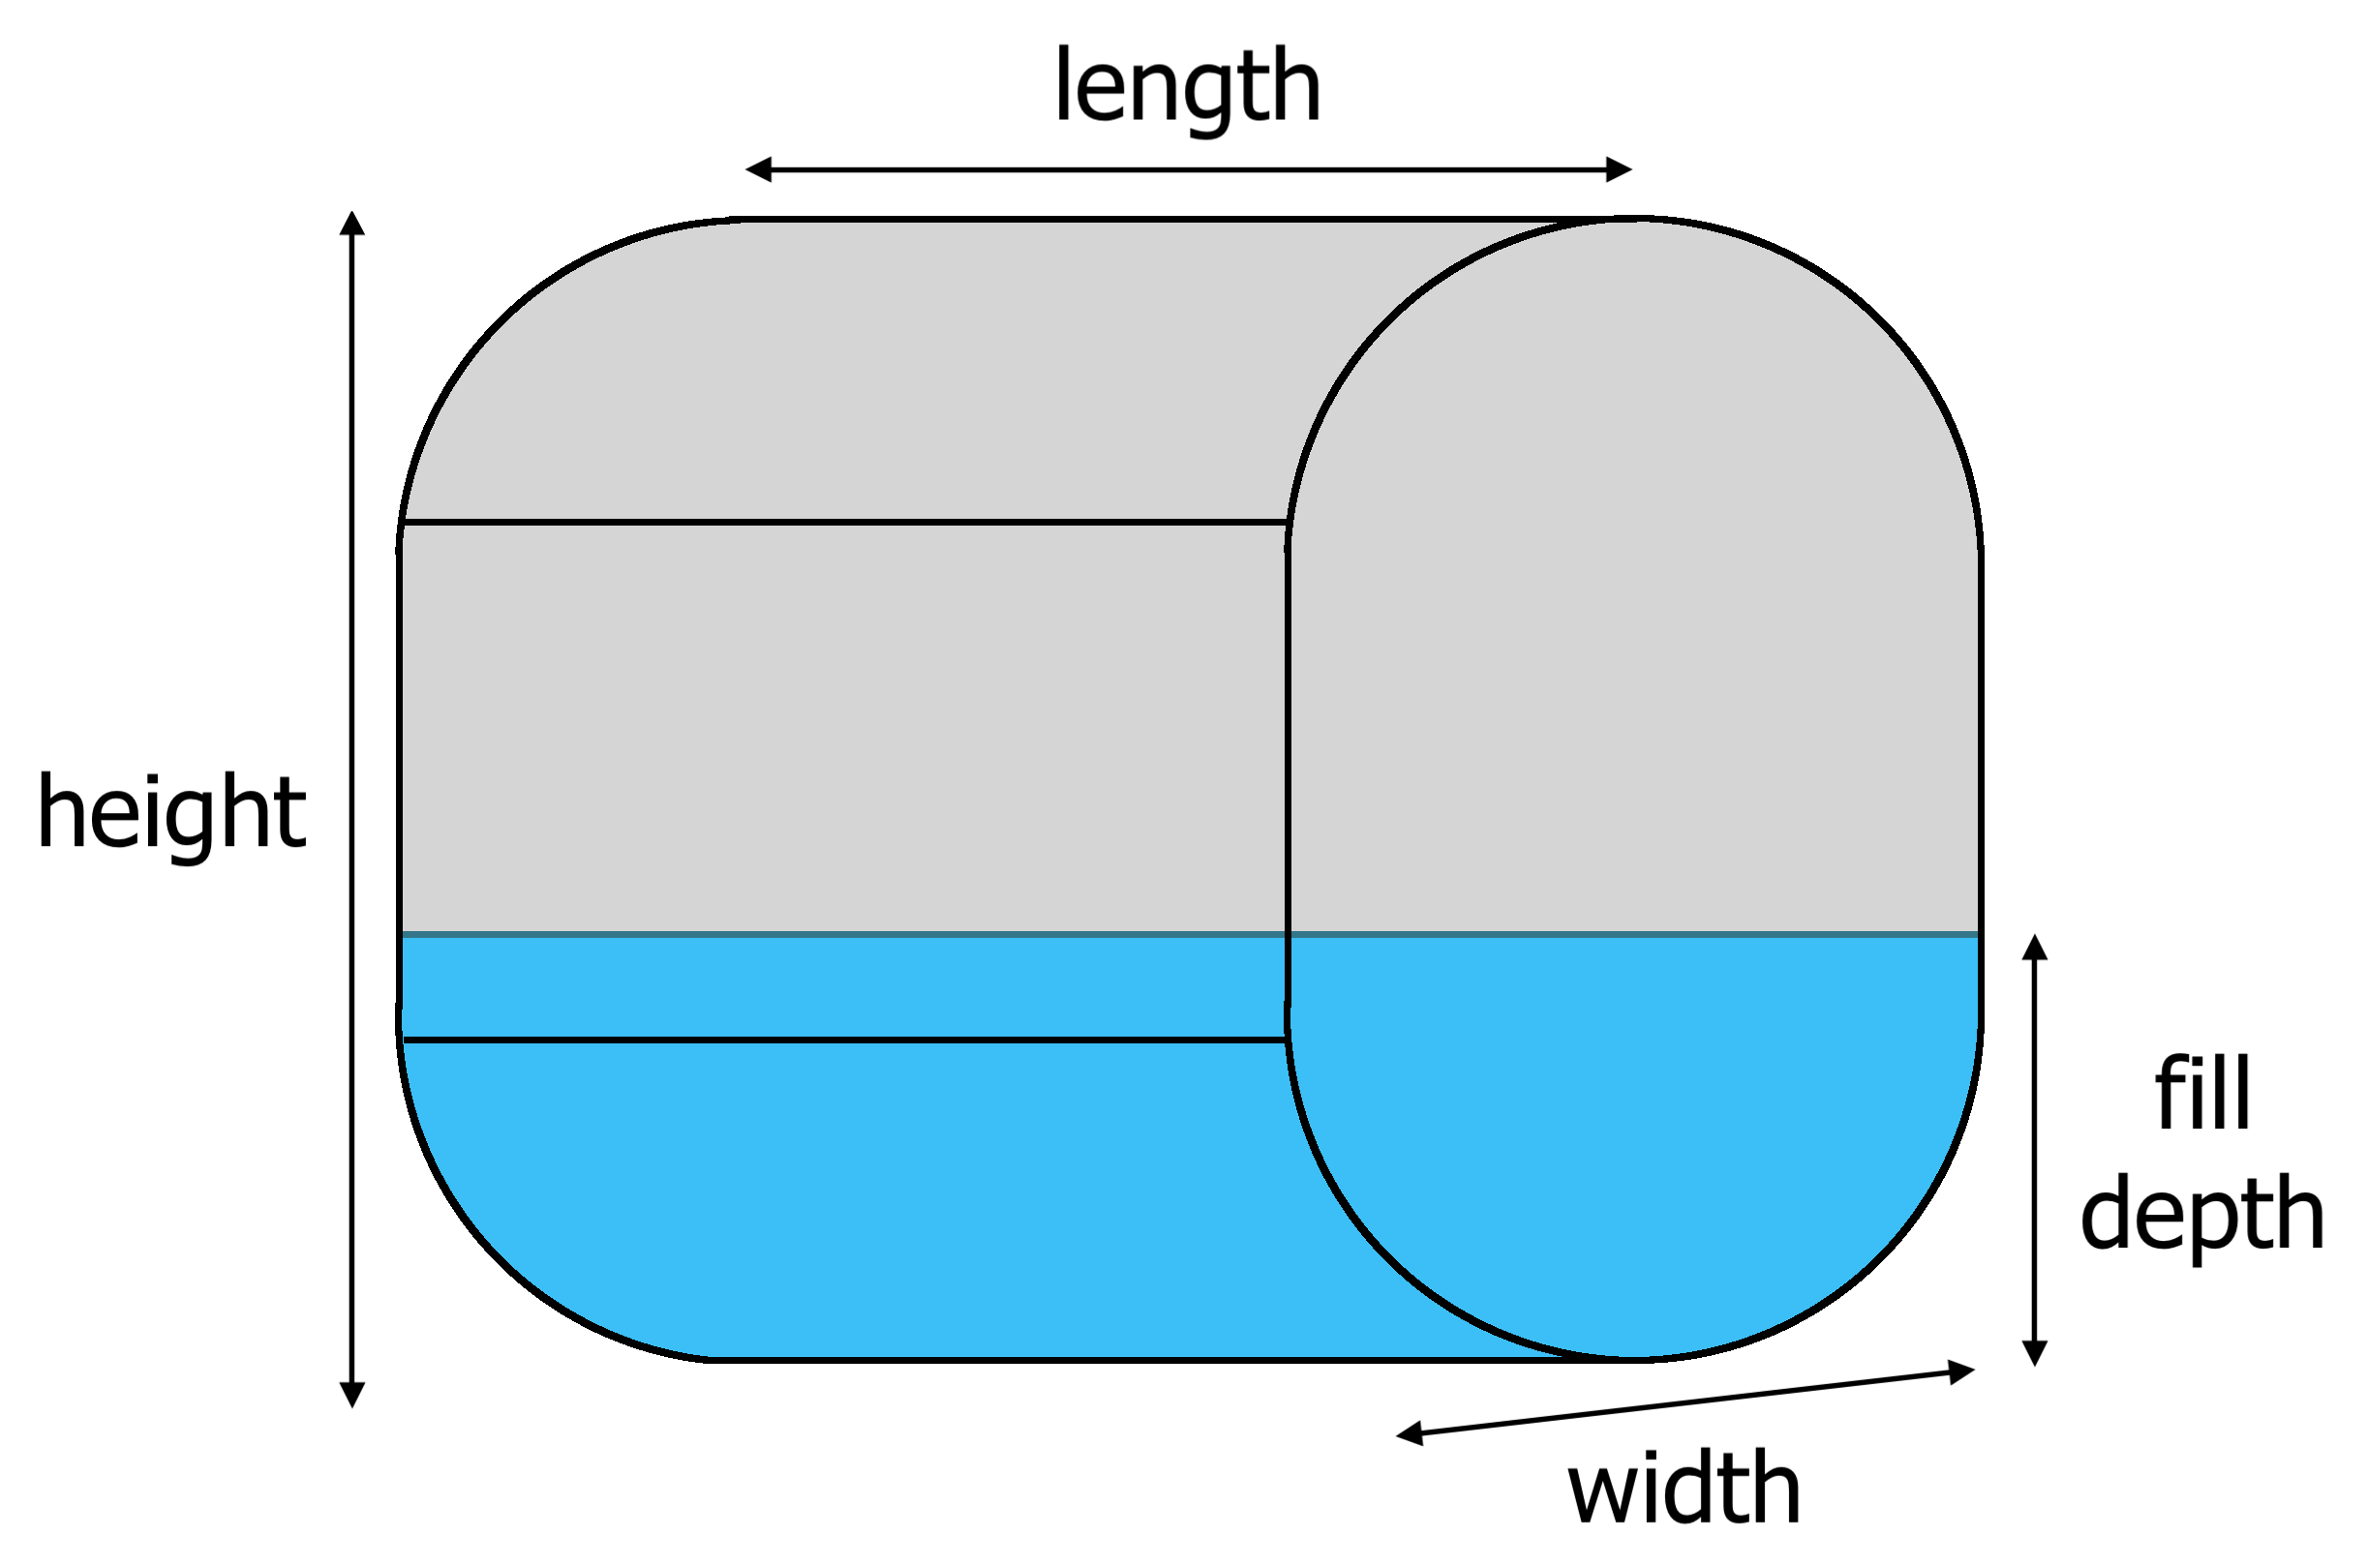 Diagram of an oval tank showing the length, width, and height dimensions